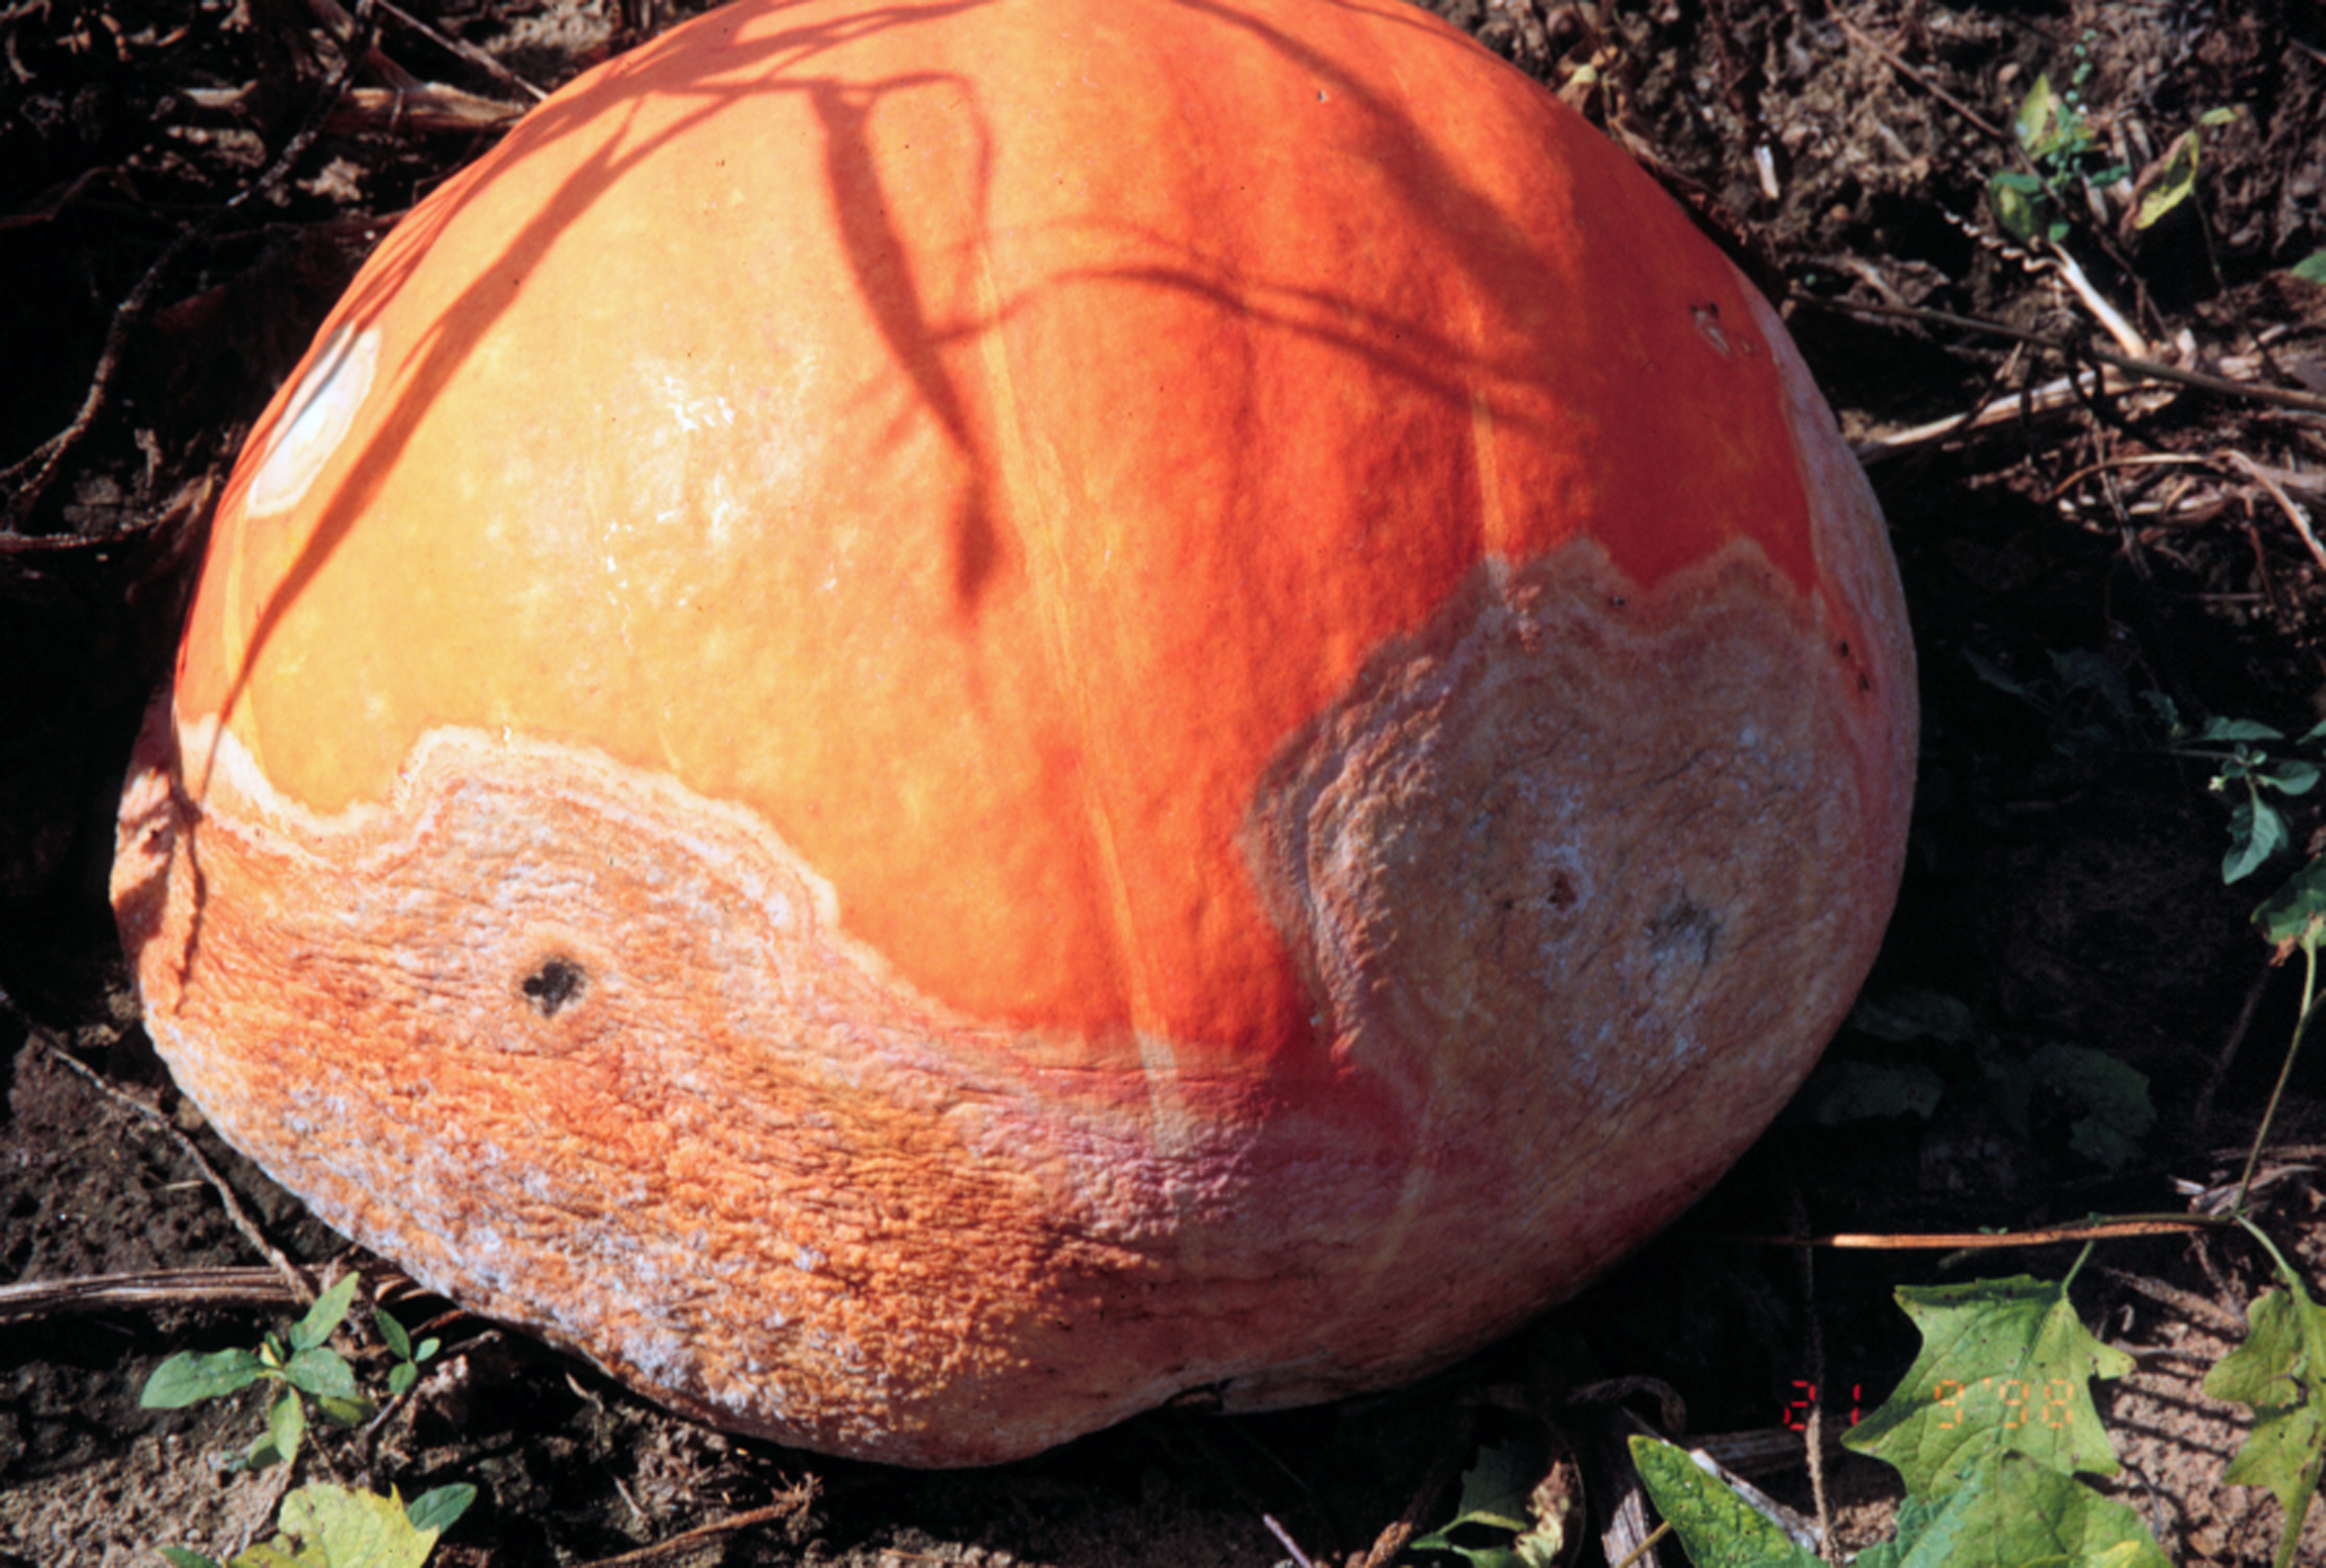 Phytophthora on pumpkin